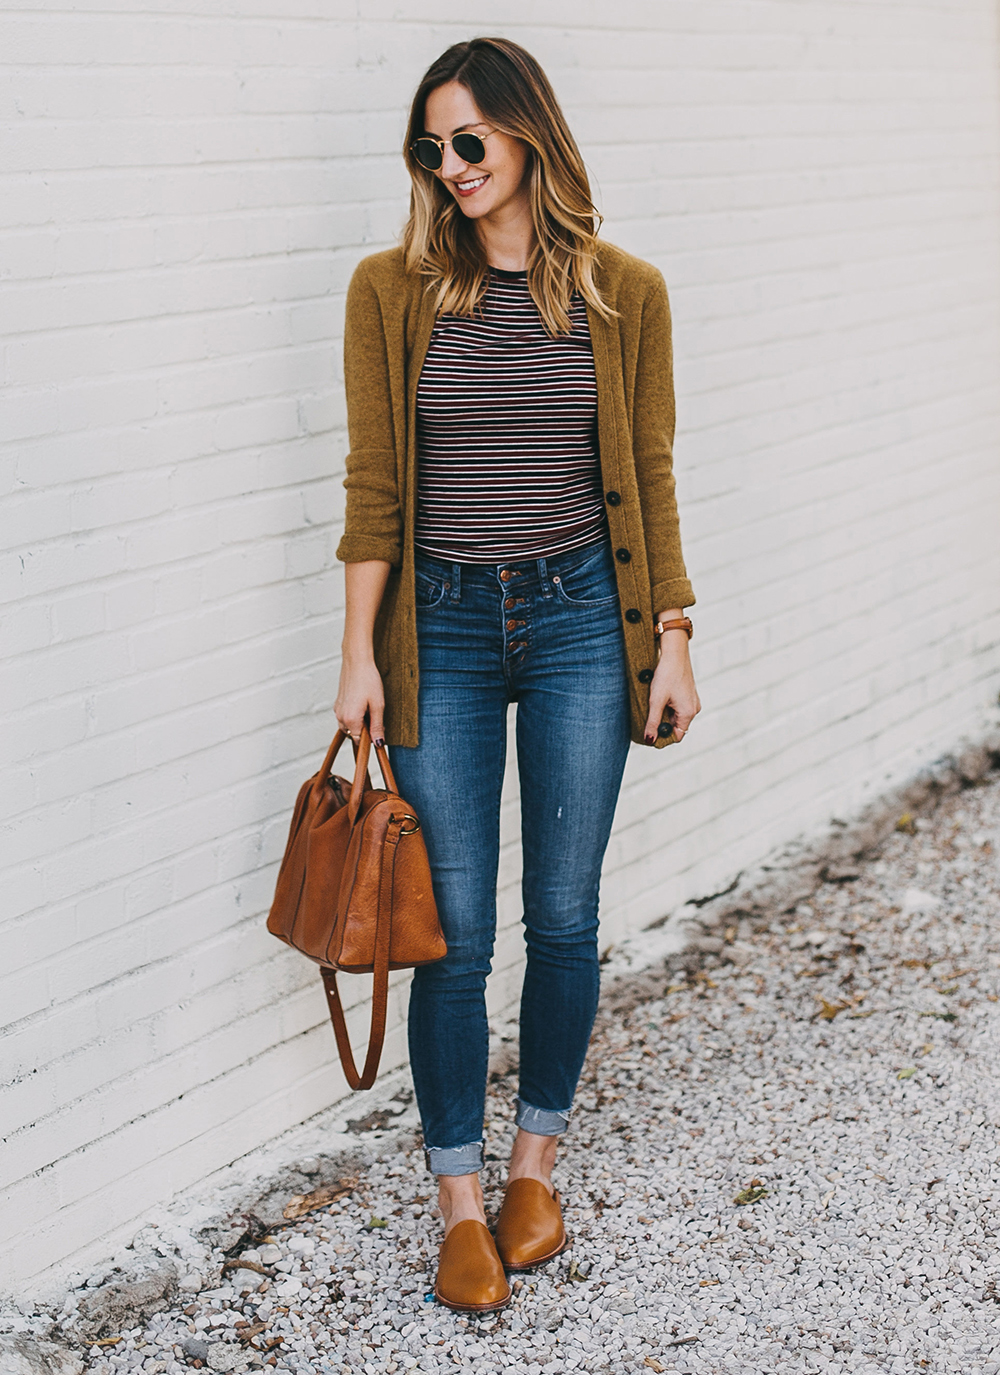 livvyland-blog-olivia-watson-austin-texas-fashion-lifestyle-blogger-madewell-grandpa-cardigan-button-up-high-rise-skinny-jeans-tan-leather-slides-fall-outfit-style-idea-8